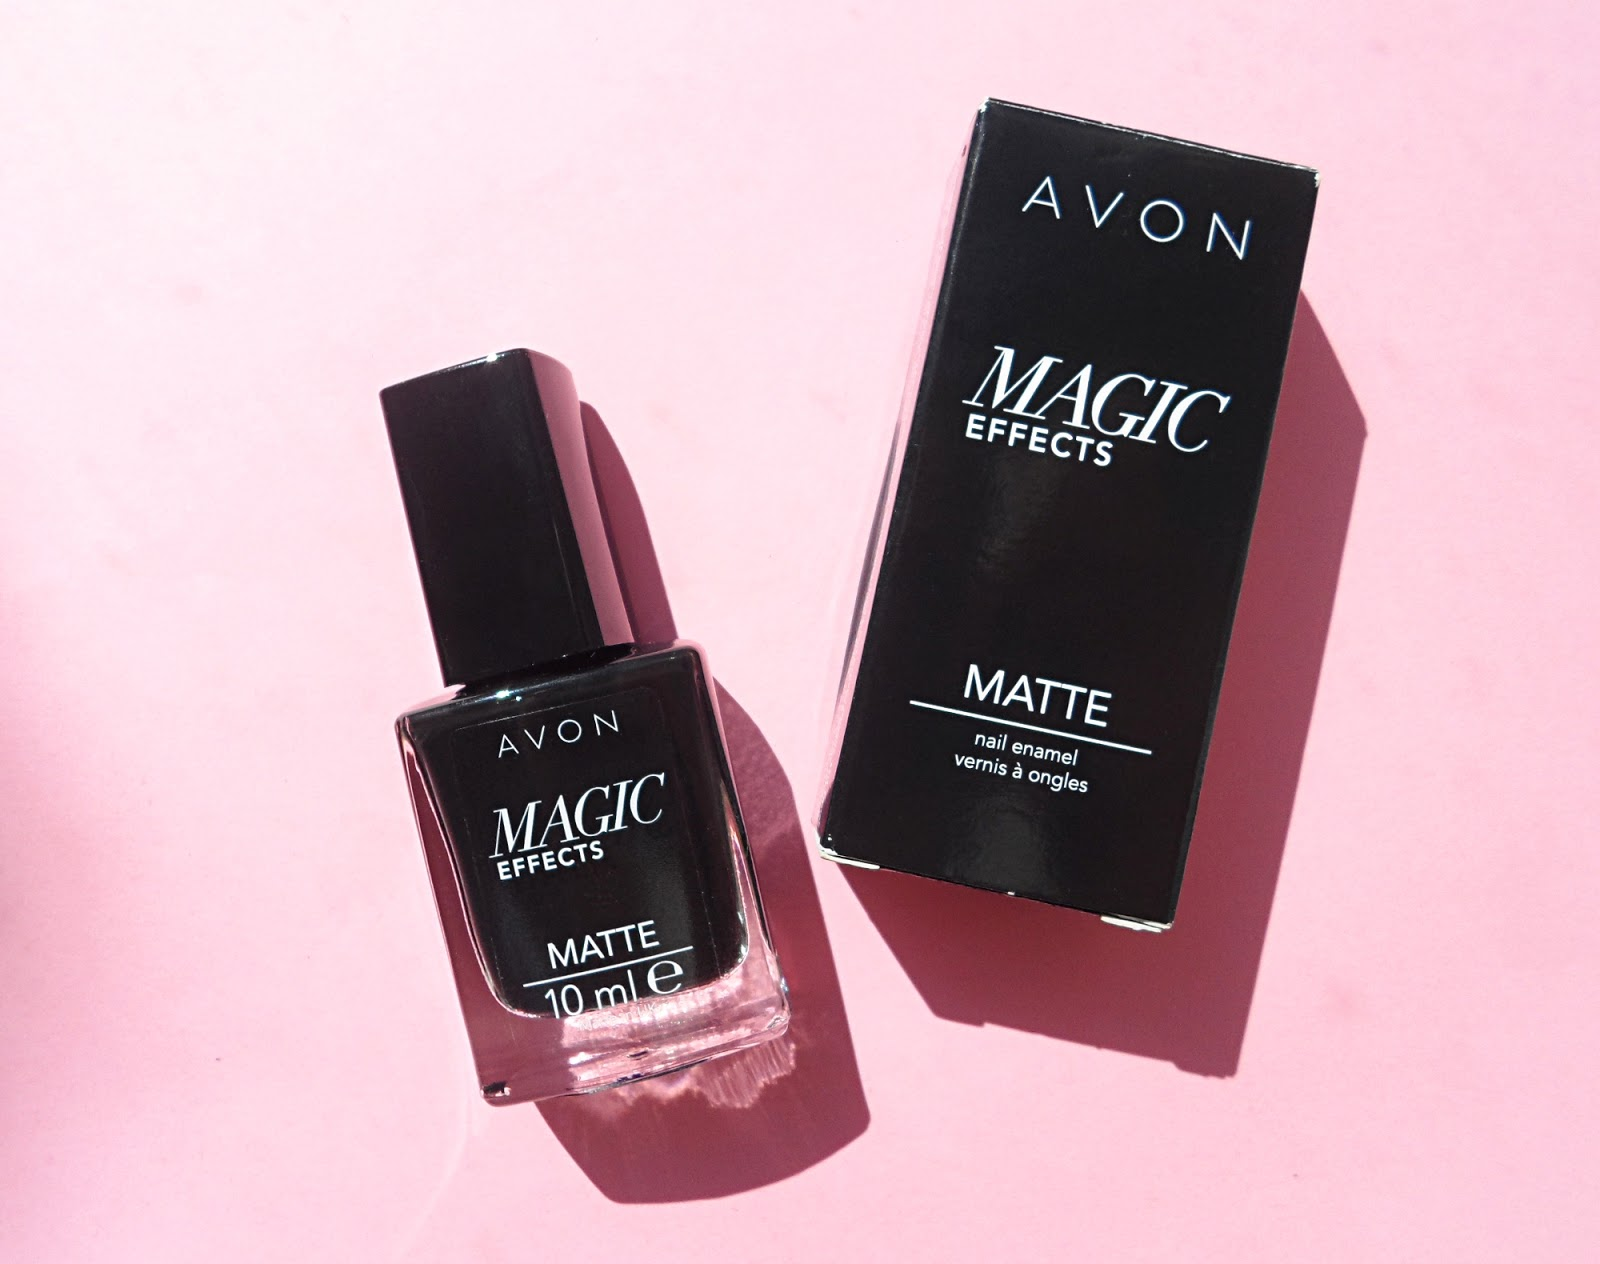 AVON MAGIC EFFECTS MATTE NAIL ENAMEL | REVIEW & SWATCHES